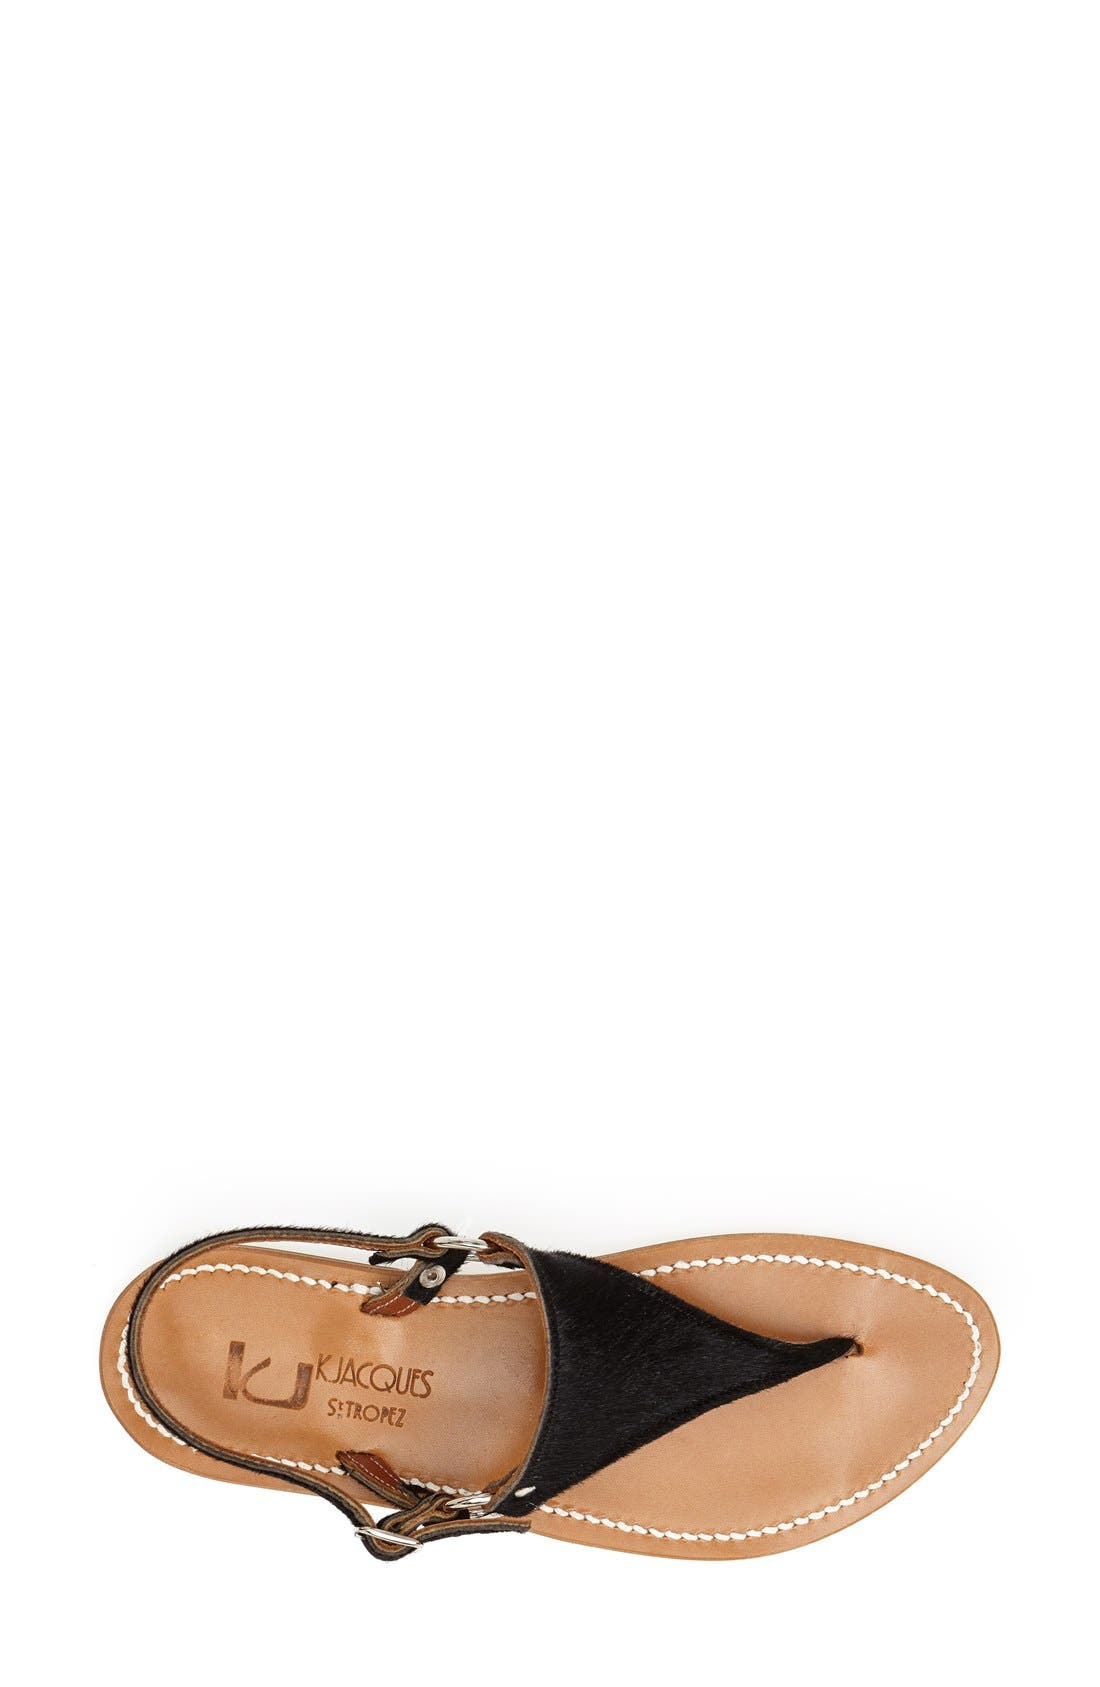 Alternate Image 3  - K.Jacques St. Tropez 'Triton' V Strap Calf Hair Thong Sandal (Women)